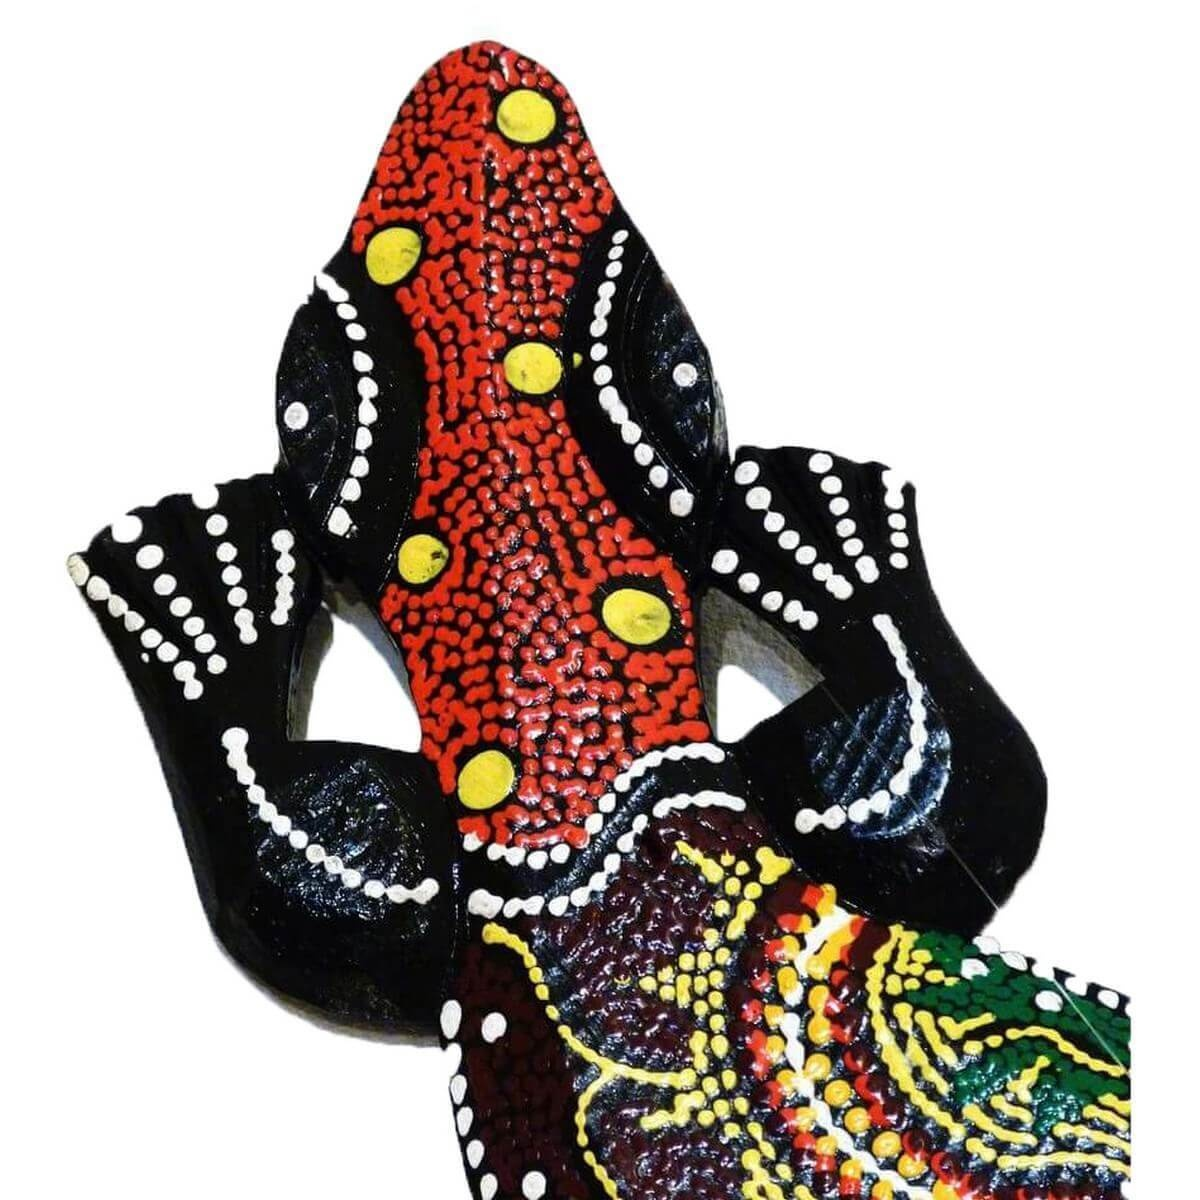 gecko decorative figurine wall deco wood figure africa. Black Bedroom Furniture Sets. Home Design Ideas